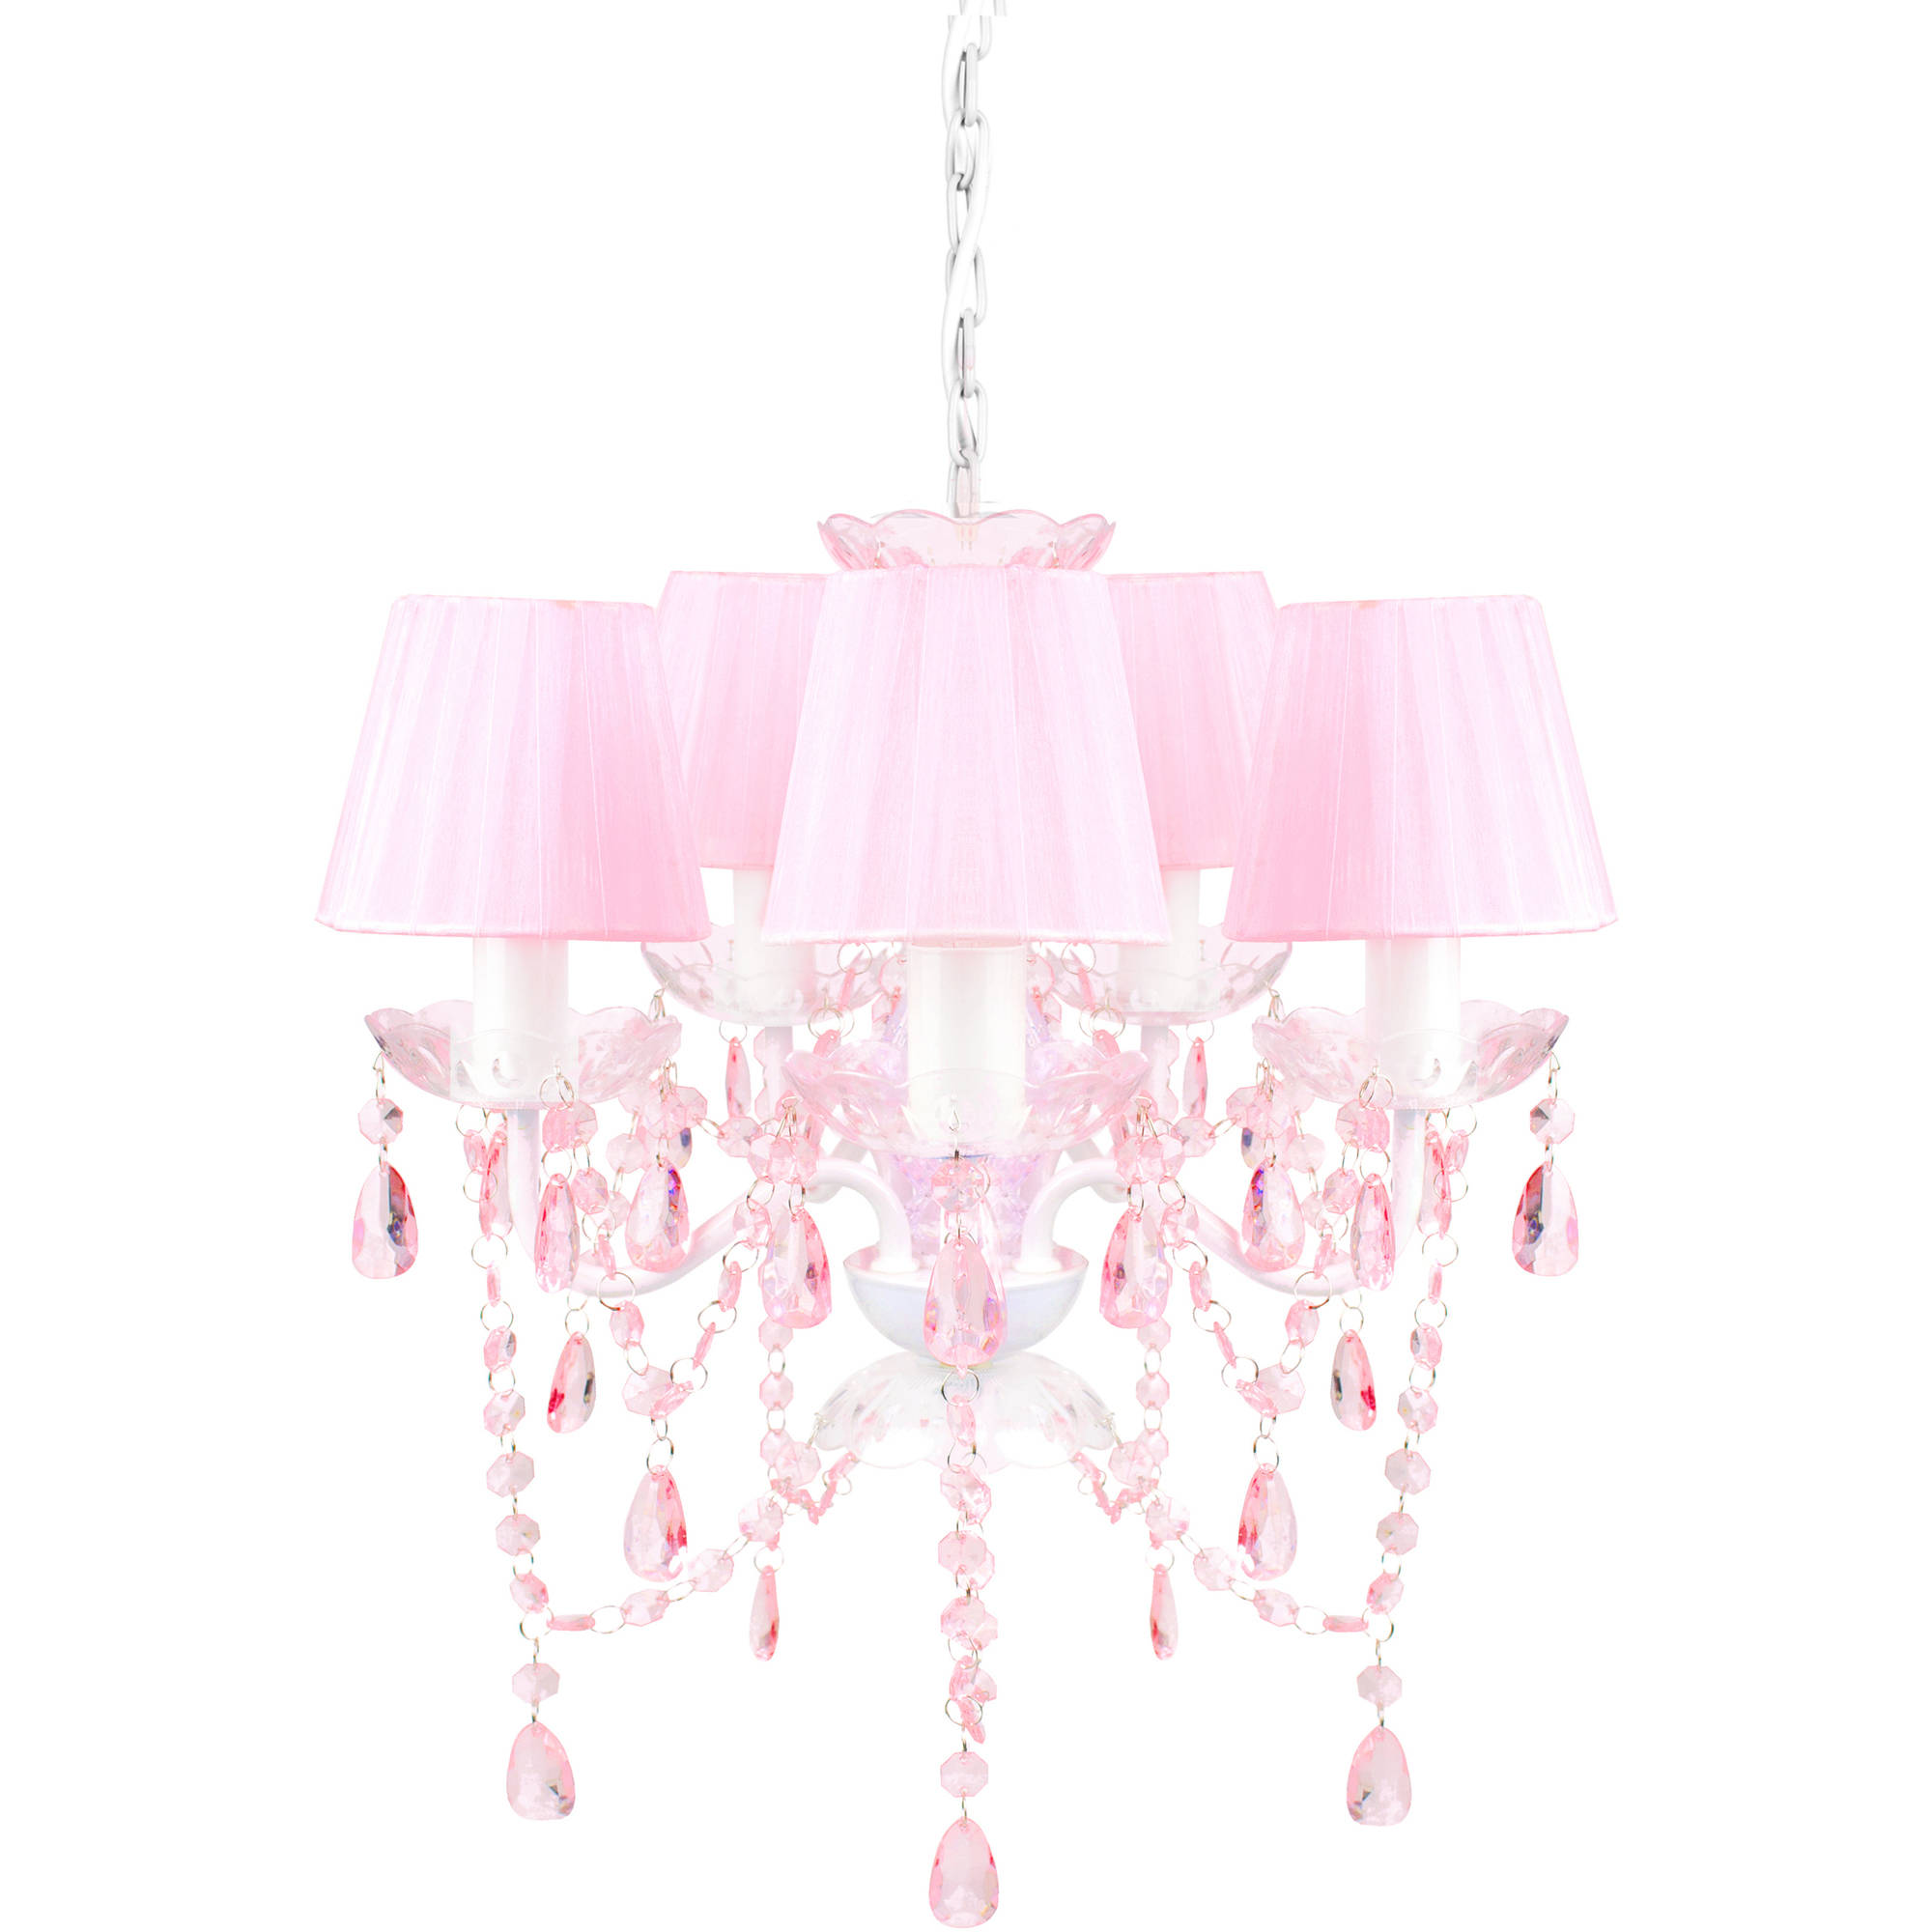 rustic table lamps galleries walmart crystals crystal inspirational chandeliers chandelier for lamp tadpoles vintage black shade